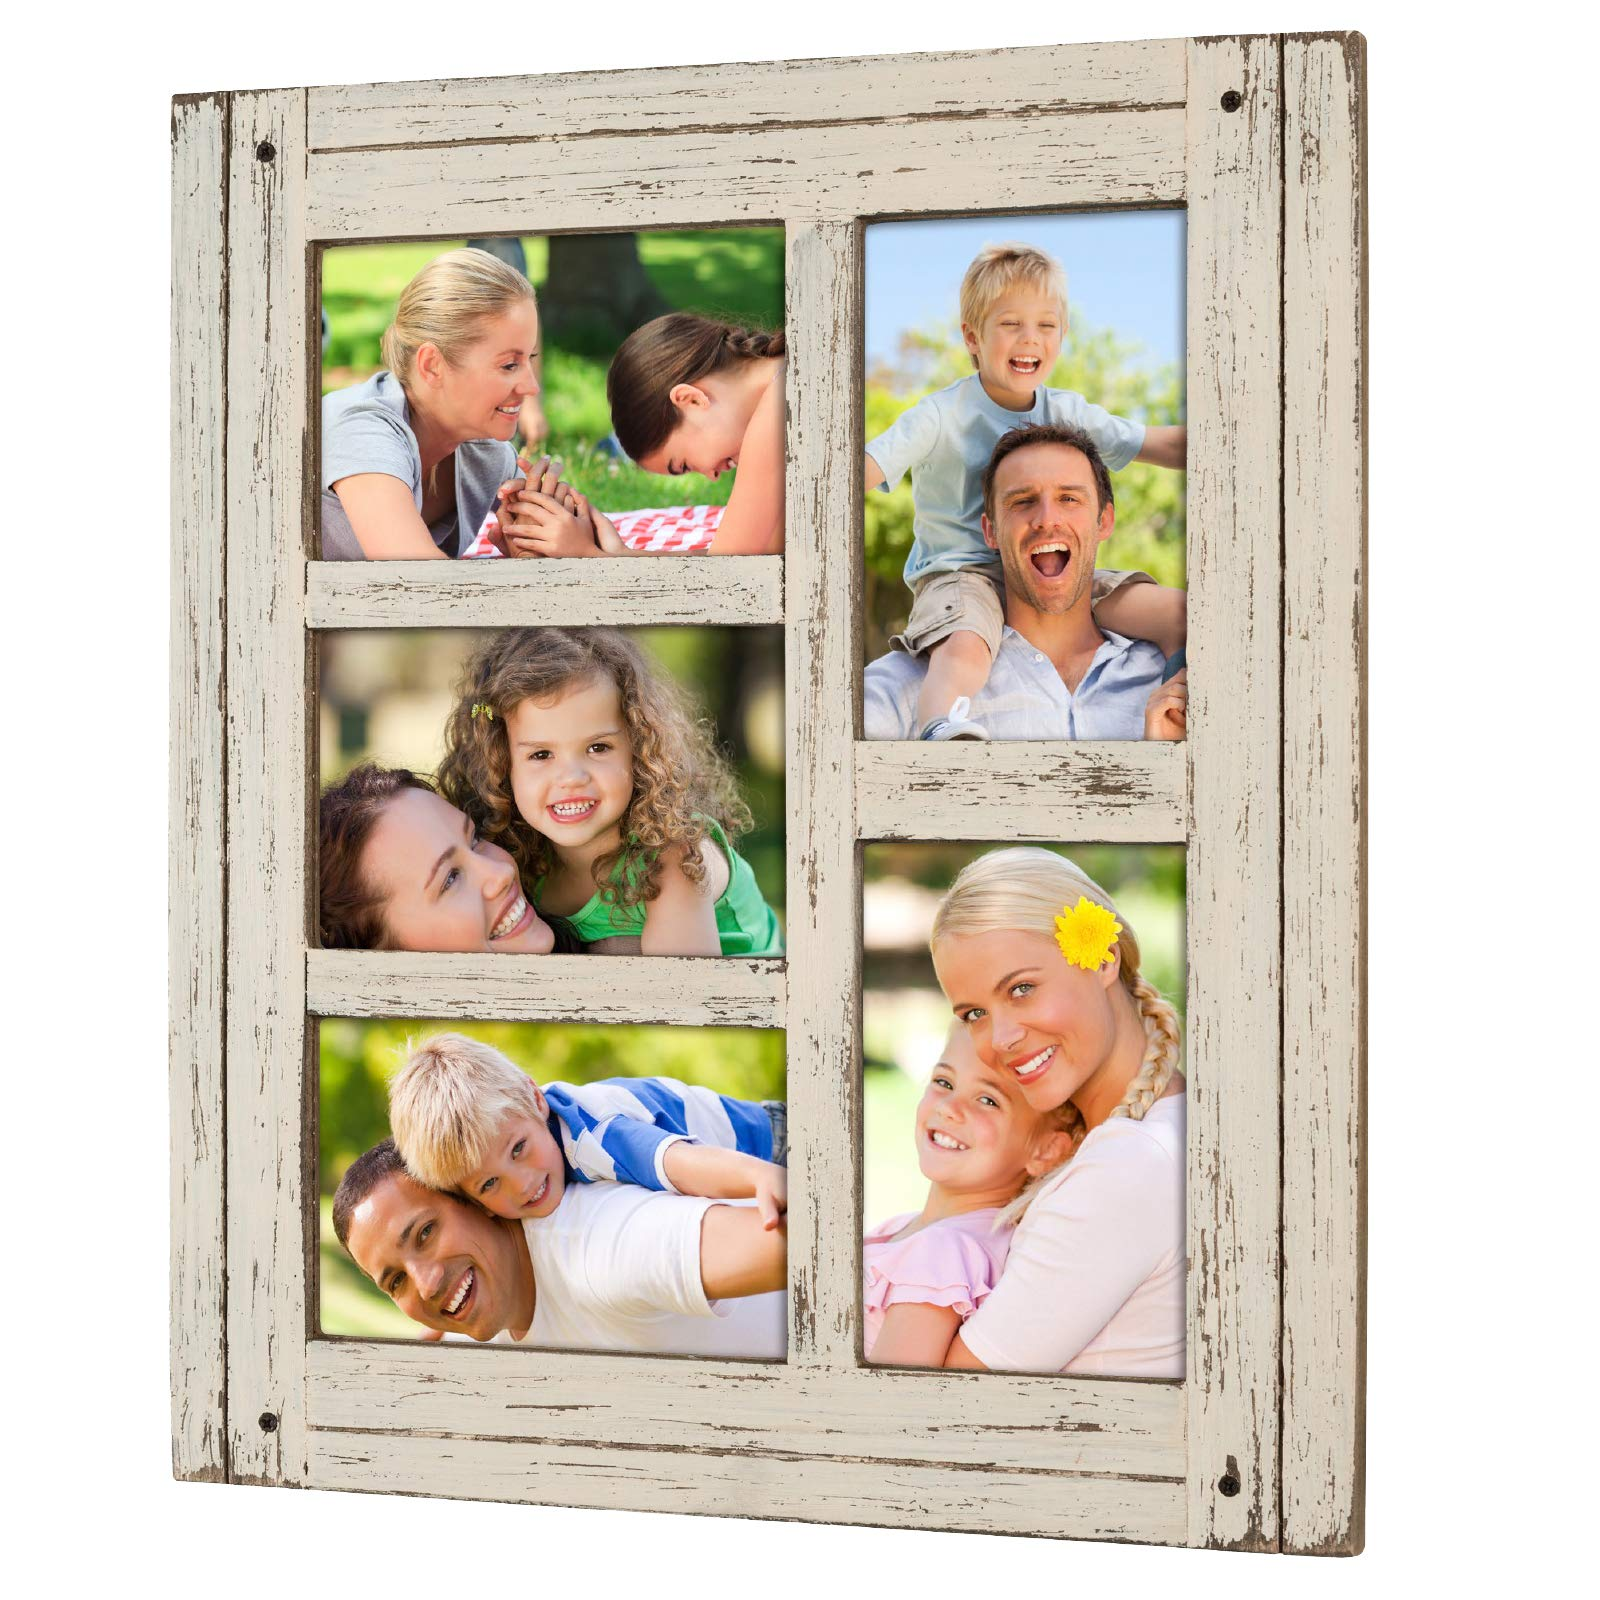 Collage Picture Frames from Rustic Distressed Wood: Holds Five 4x6 Photos: Ready to Hang or use Tabletop. Shabby Chic, Driftwood, Barnwood, Farmhouse, Reclaimed Wood Picture Frame Collage (White) by Excello Global Products